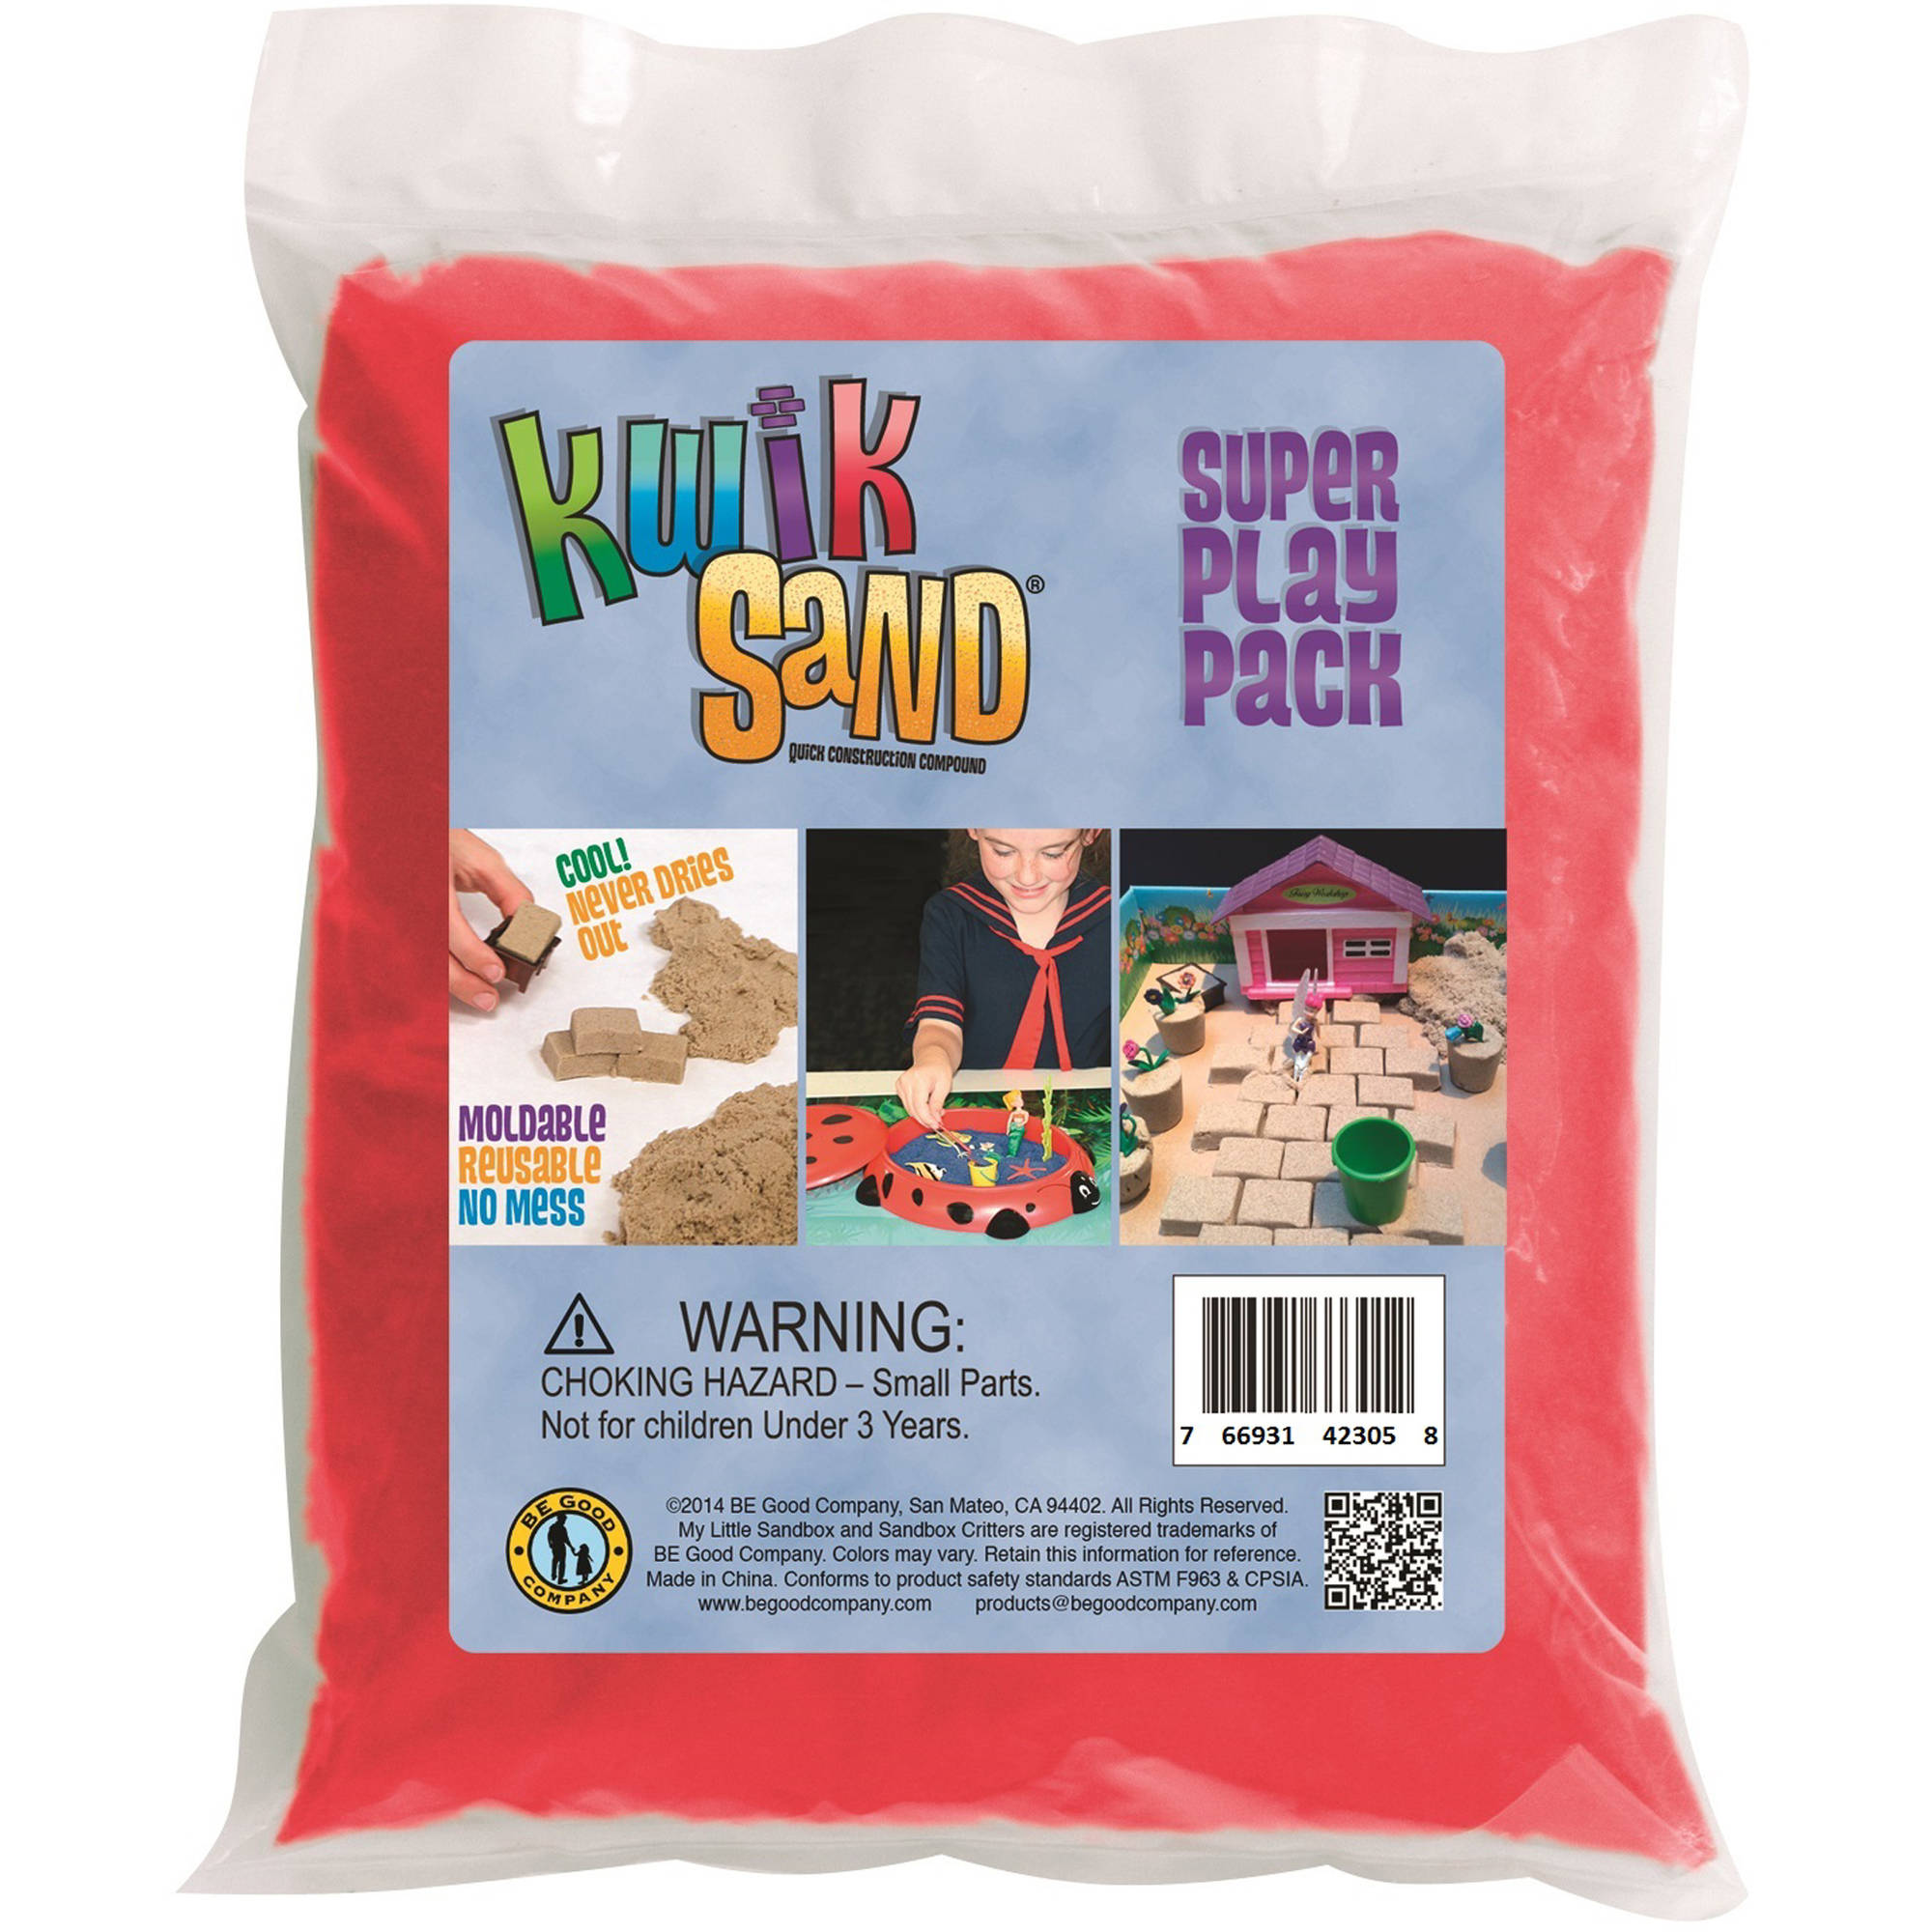 Be Good Company KwikSand Refill Pack, Red